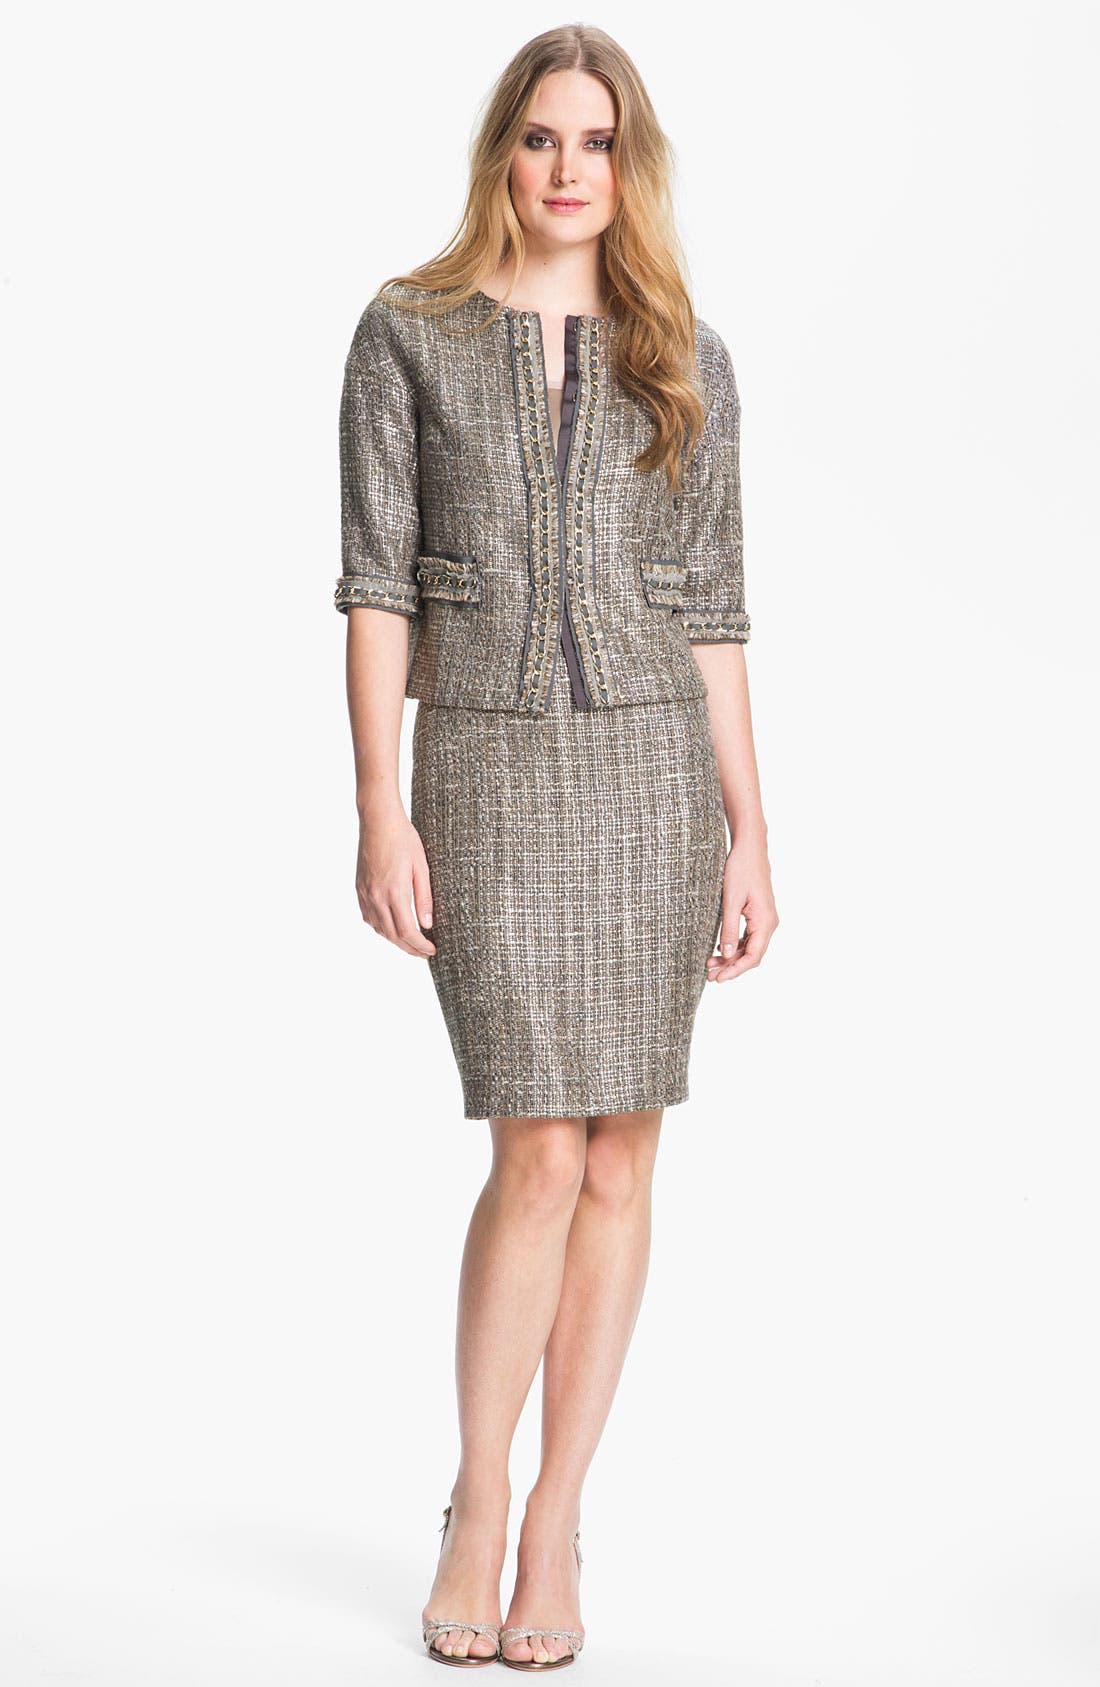 Main Image - St. John Collection Metallic Space Dye Tweed Pencil Skirt